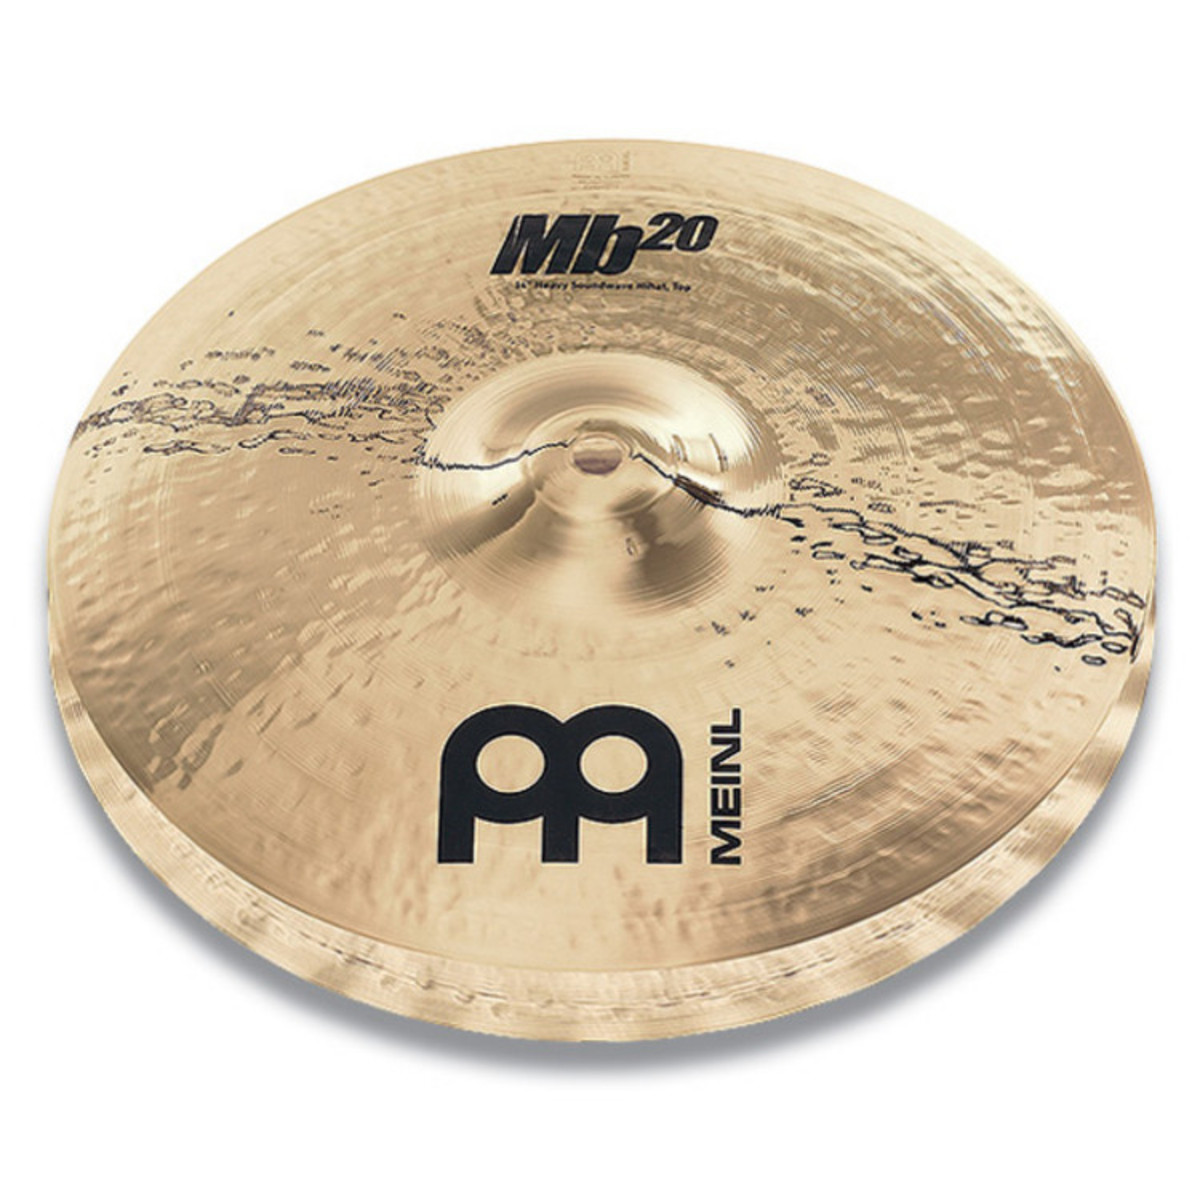 Meinl MB20-15HSW-B 15 inch Heavy Soundwave Hi-hats - Brilliant. Loading  zoom. Meinl Mb20 Series 4fa85cfe940f